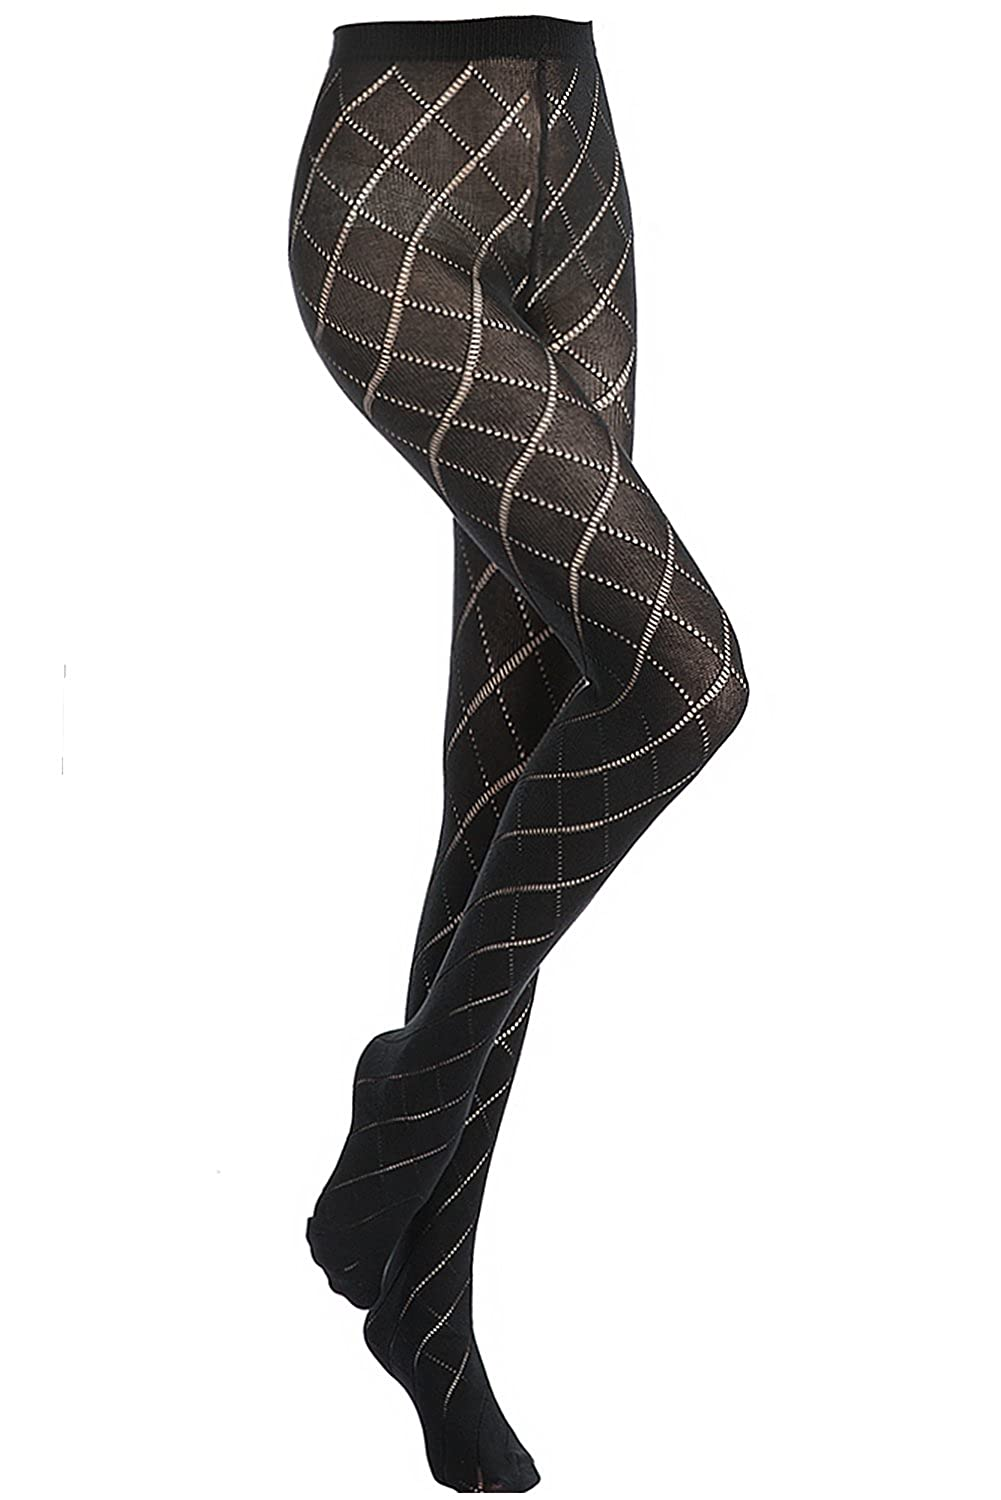 2b0f3833f Top 10 wholesale Stocking Pattern Tights - Chinabrands.com